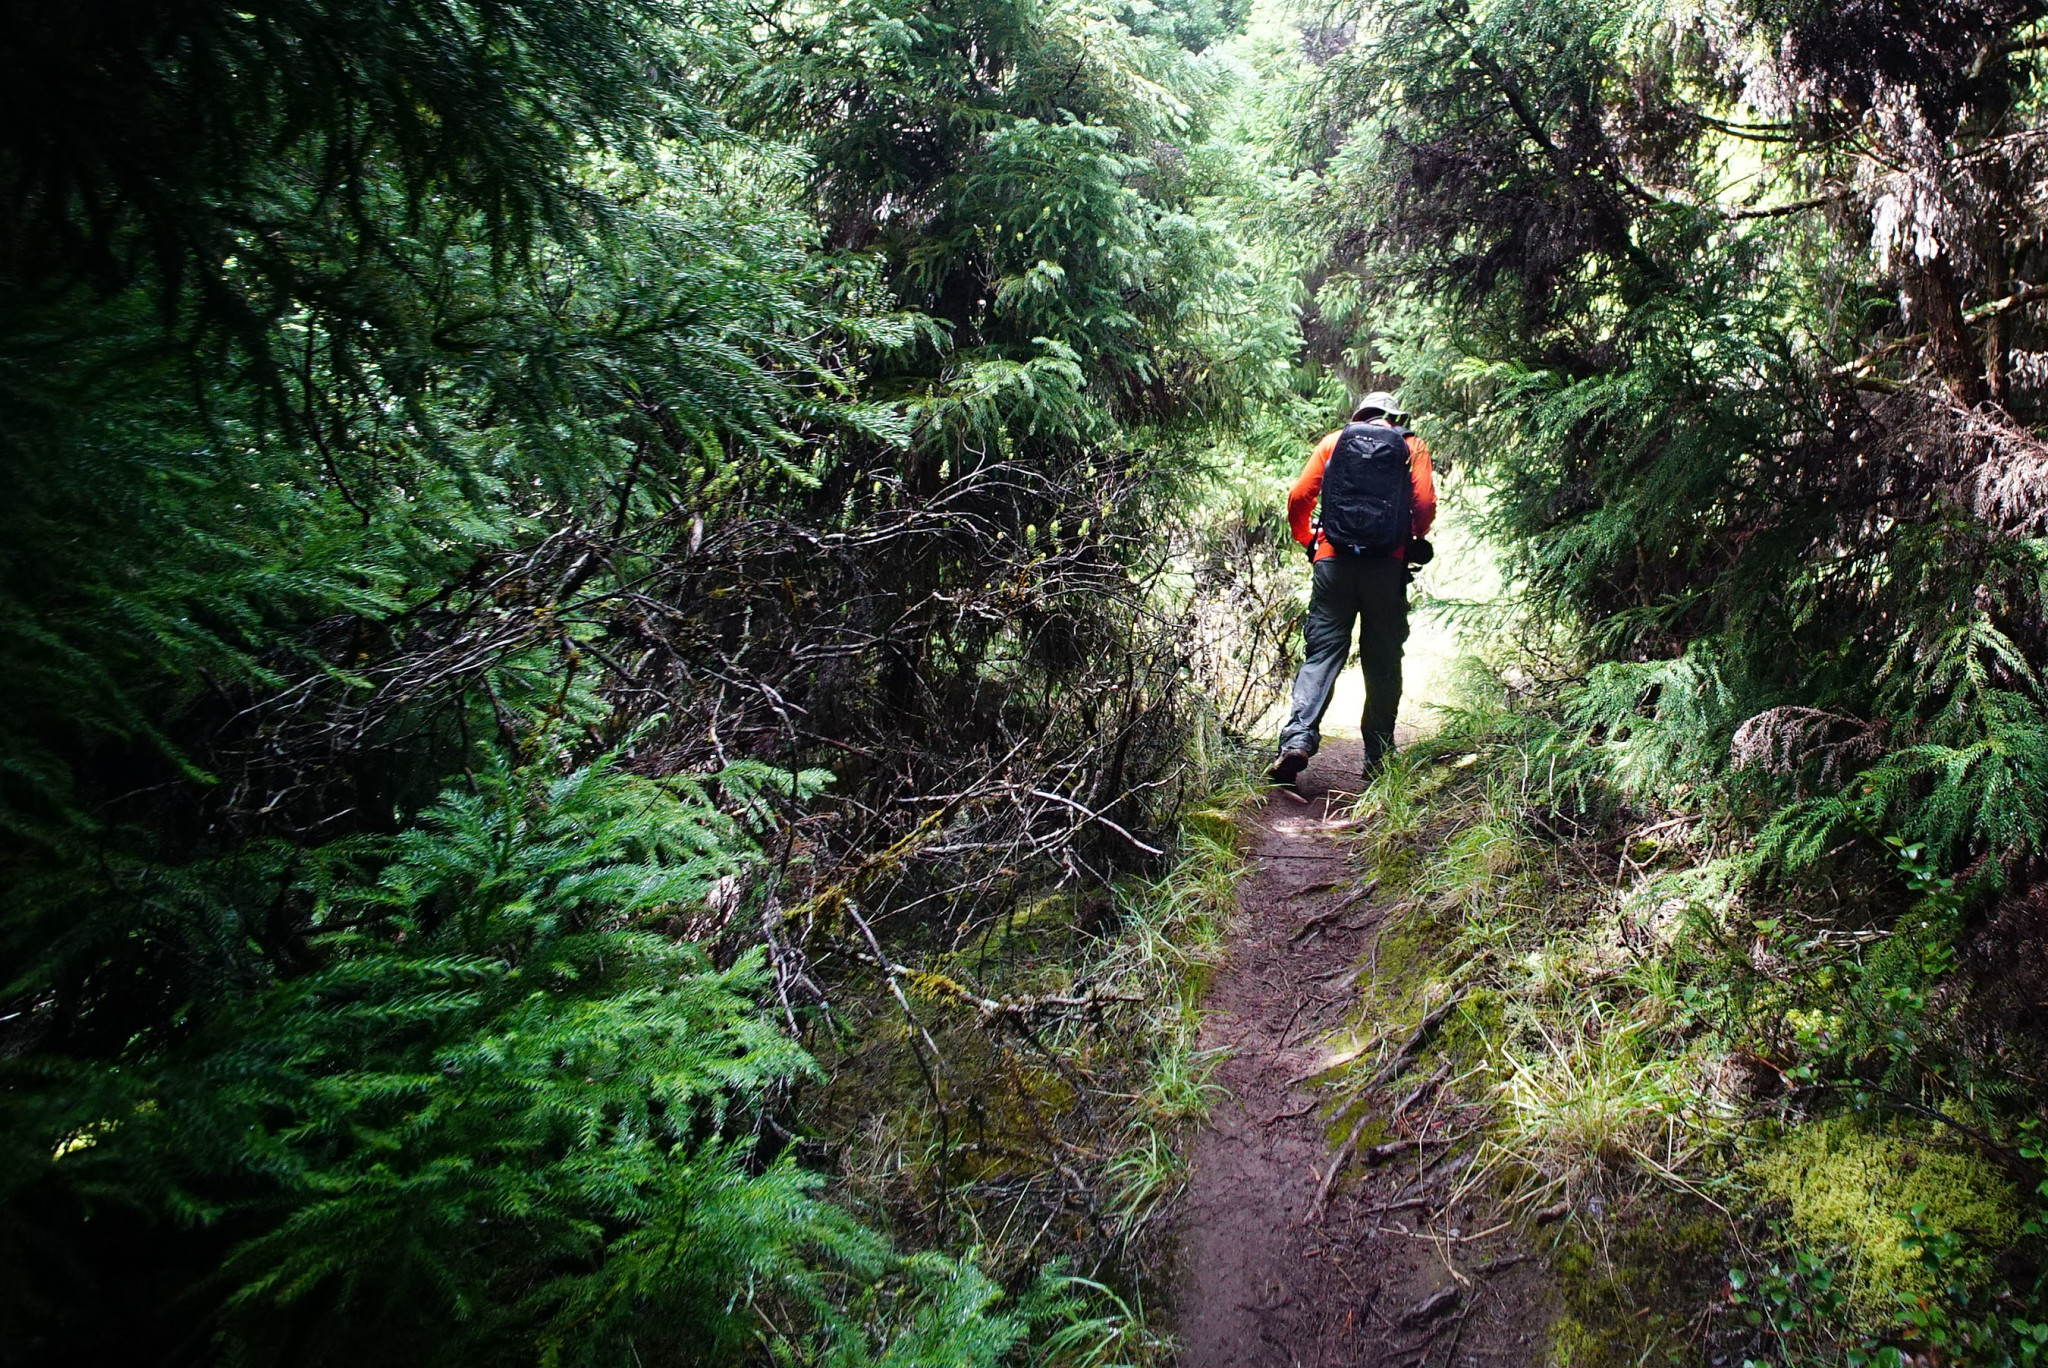 <p>Even at Waikamoi Preserve, hikers first walked among non-native evergreens that choke the floor of the watershed. The struggle is constant to protect native species by managing invasive plants and animals that threaten their survival.</p>